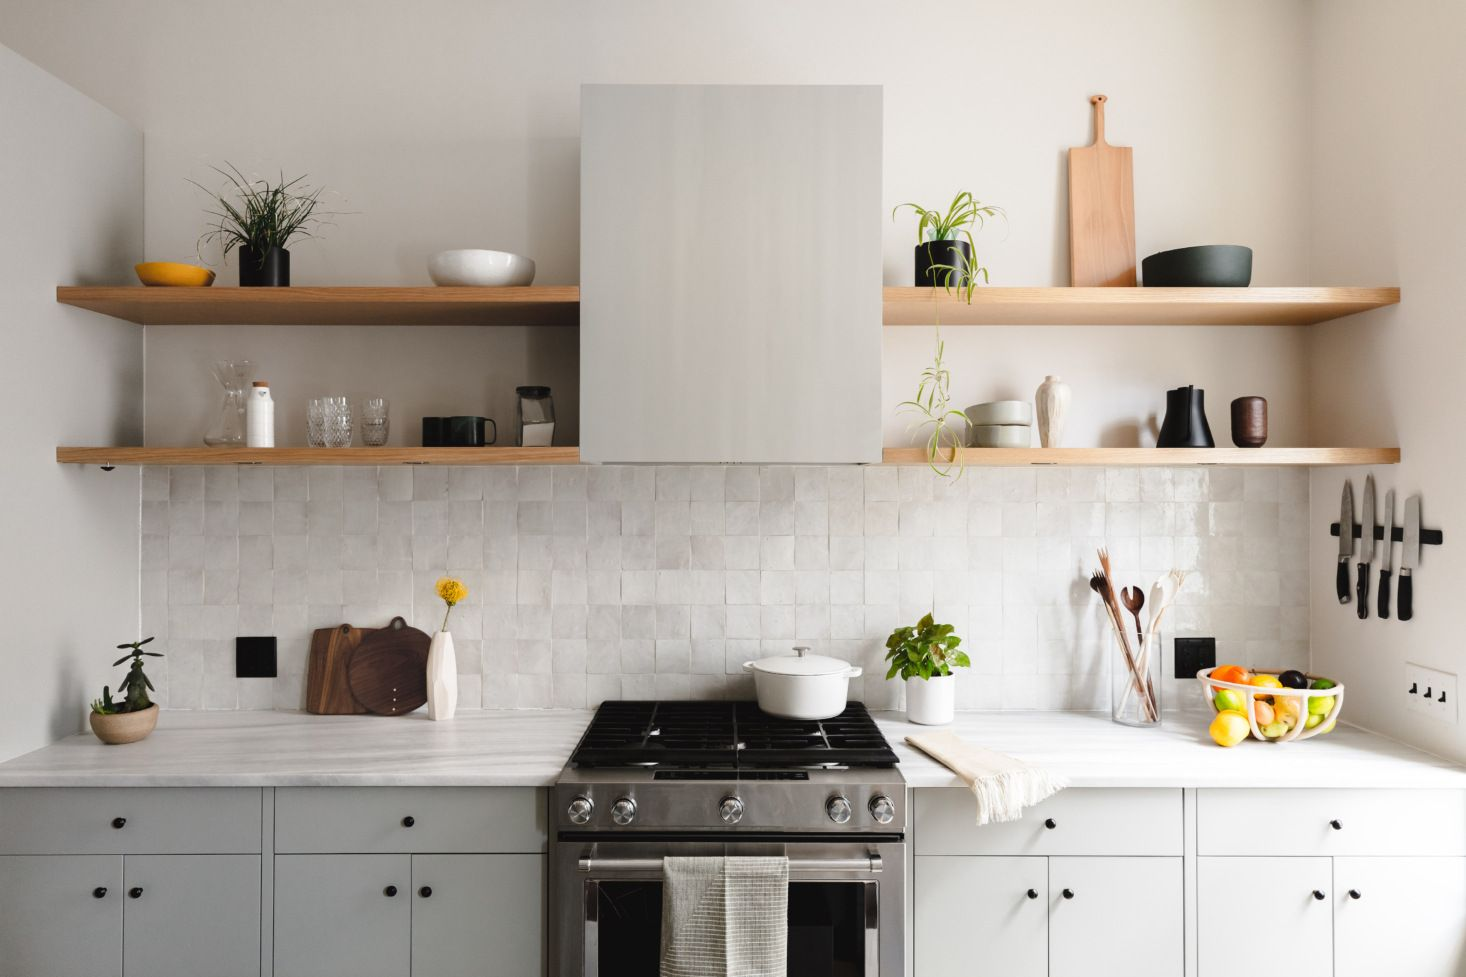 Kitchen of the Week: A Brooklyn Kitchen Designed Around the Keywords Social and Minimal but Warm - Remodelista